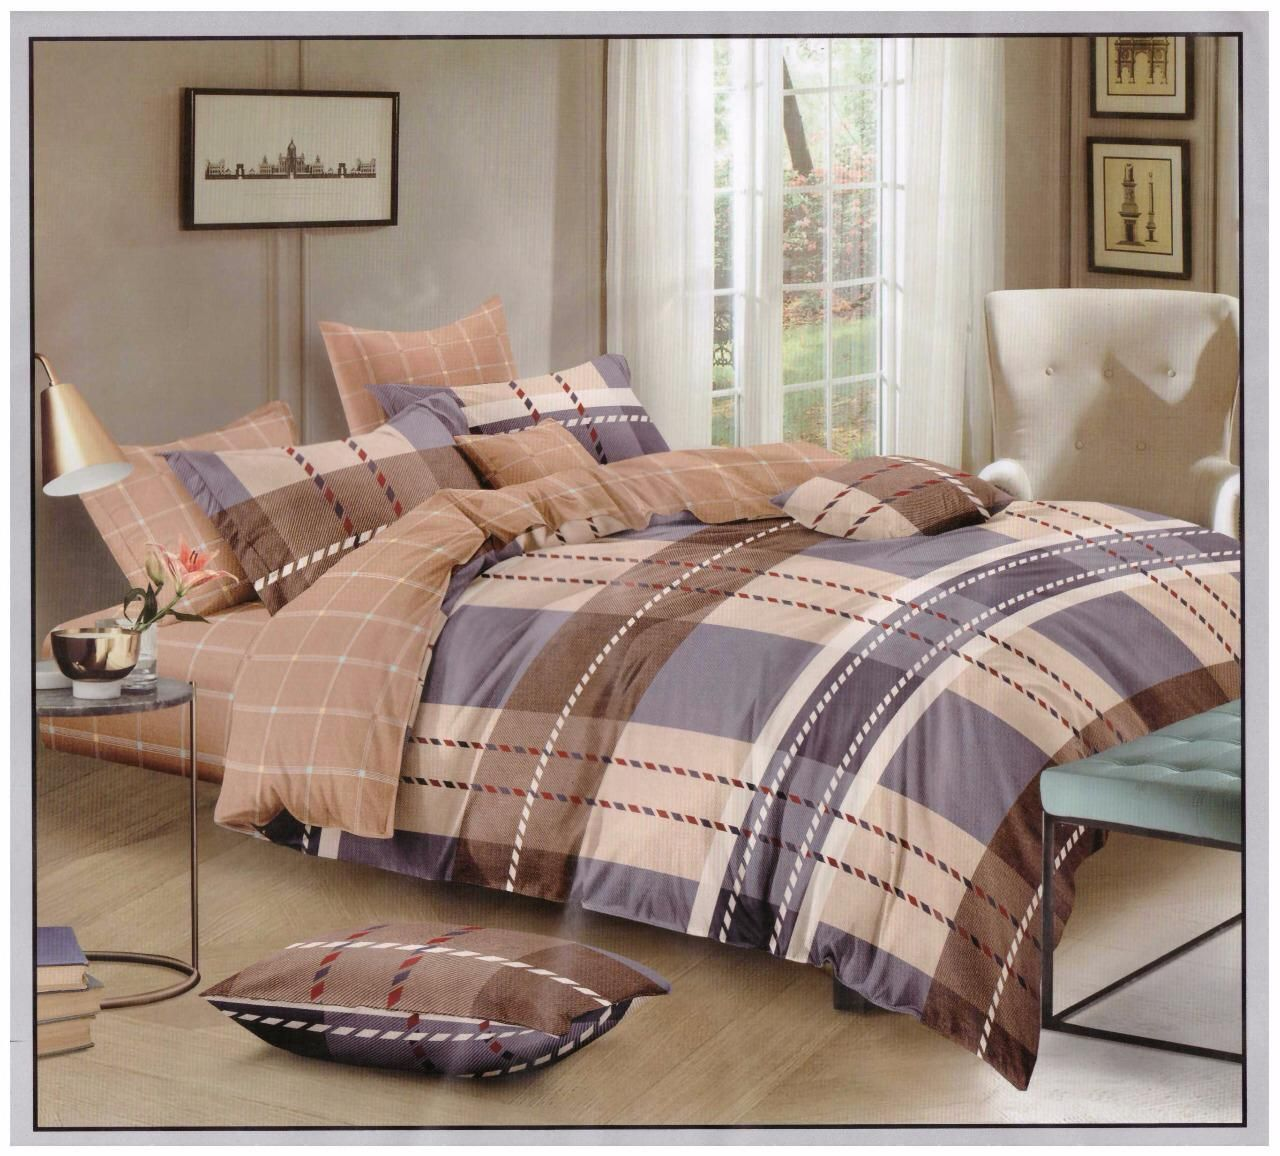 Wholesale Bedding Suppliers Distributors In India In 2020